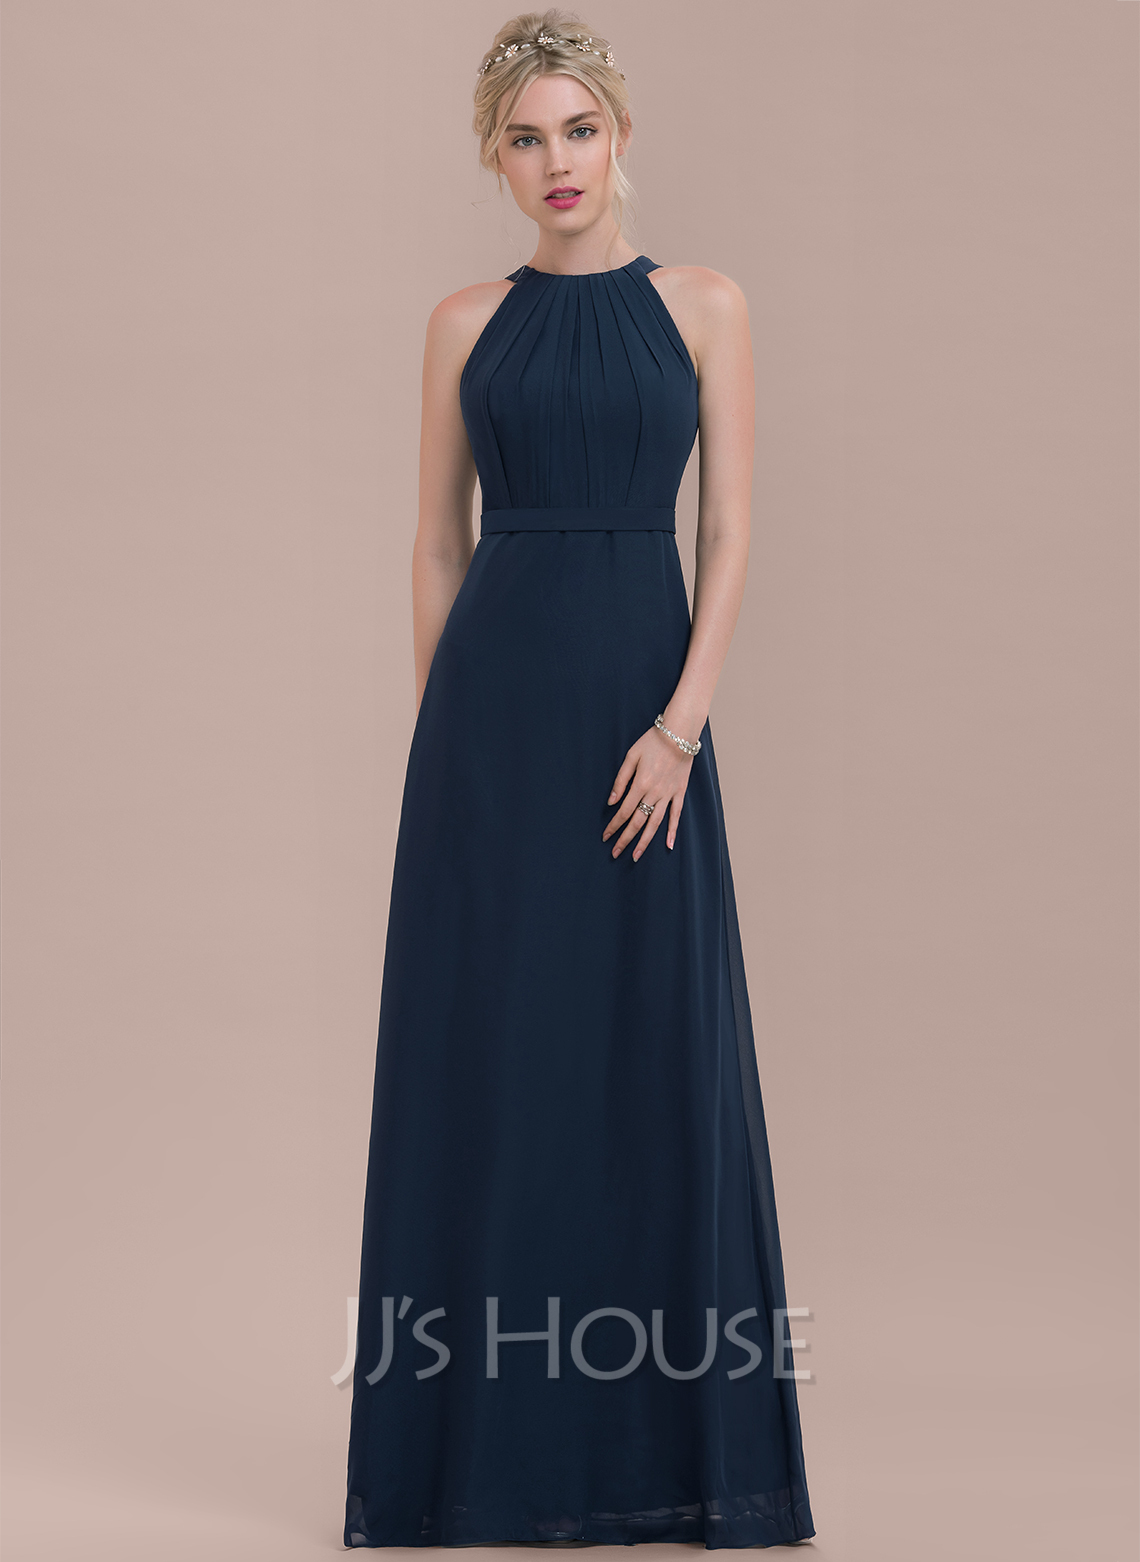 b18b9a6a7 A-Line/Princess Scoop Neck Floor-Length Chiffon Bridesmaid Dress With  Ruffle #126519. Bridesmaid Dresses